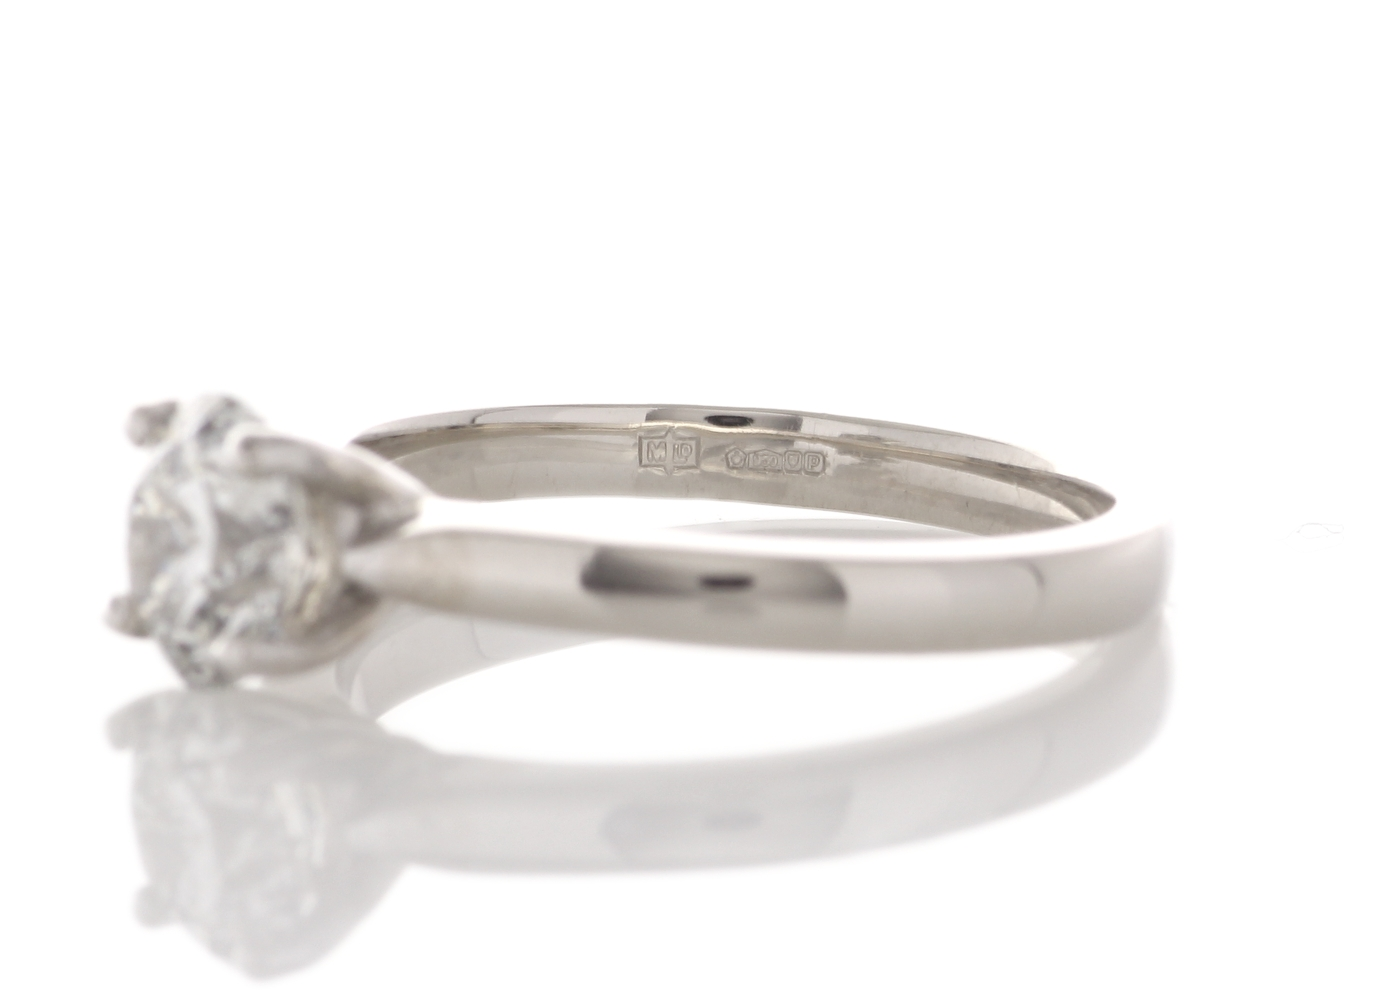 Lot 39 - Platinum Single Stone Claw Set Diamond Ring 1.07 Carats